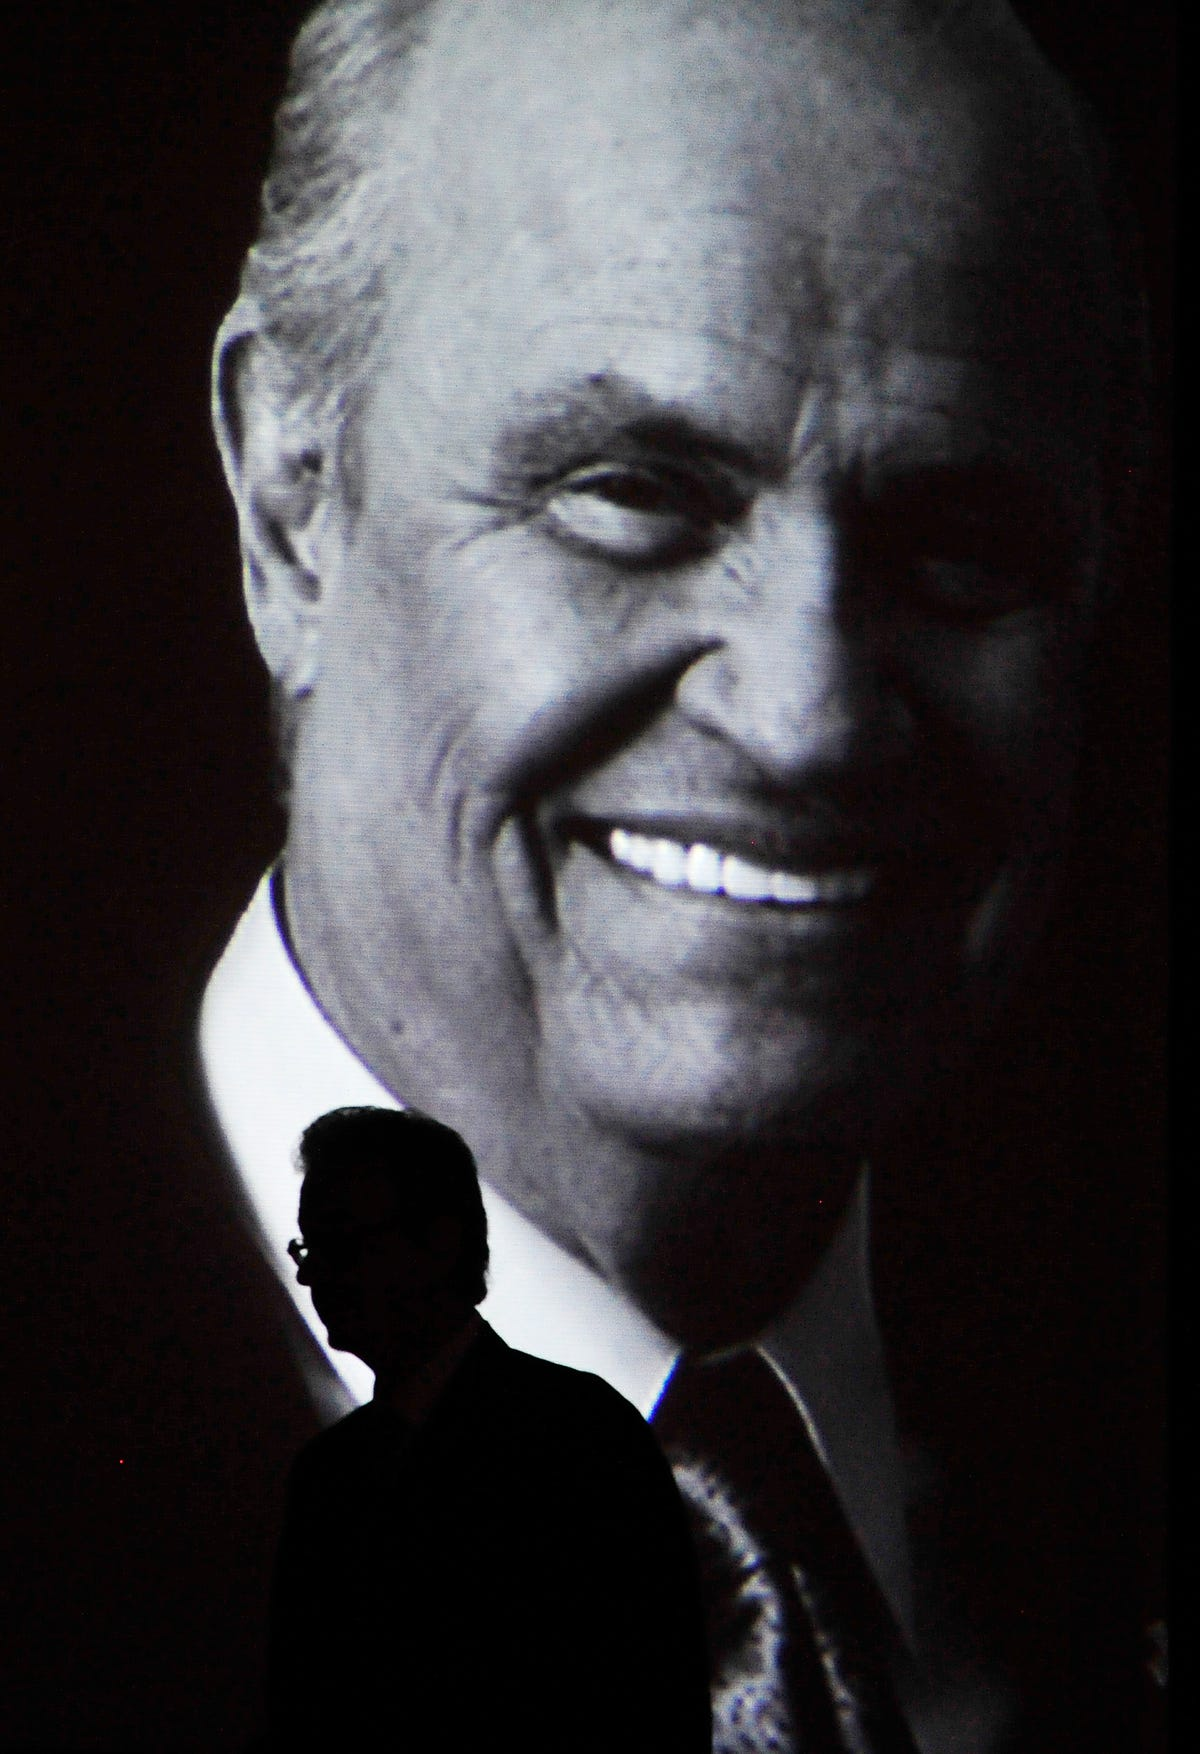 Fred Thompson remembered as a natural actor, politician